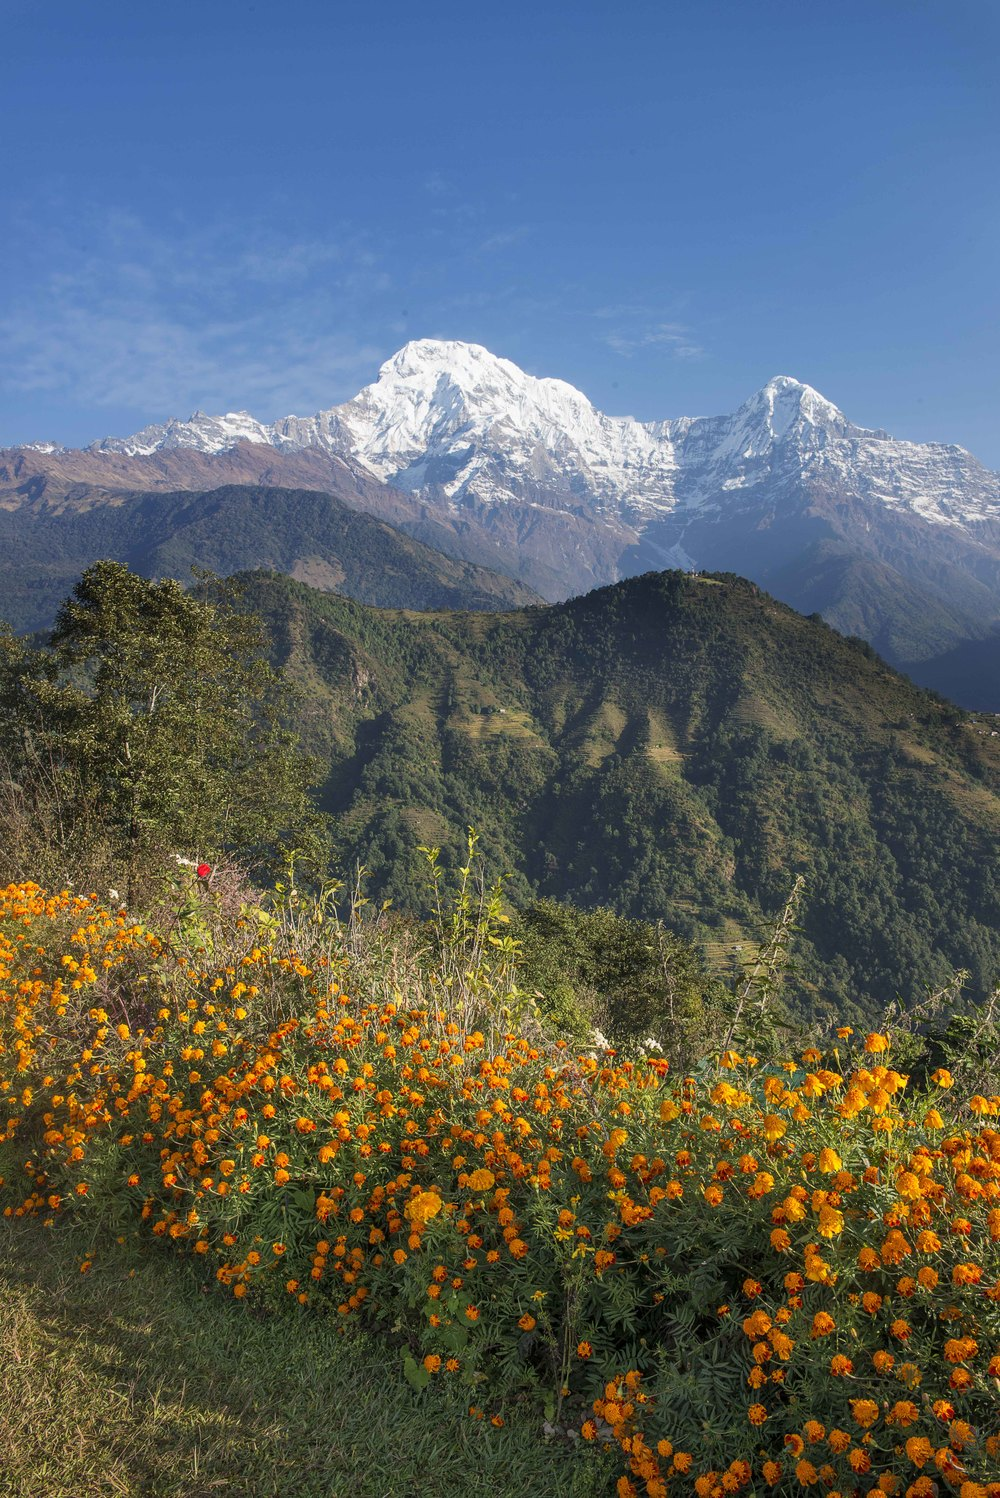 The view from our lodge. In the two regions I would visit in Nepal, these flowers were every where.